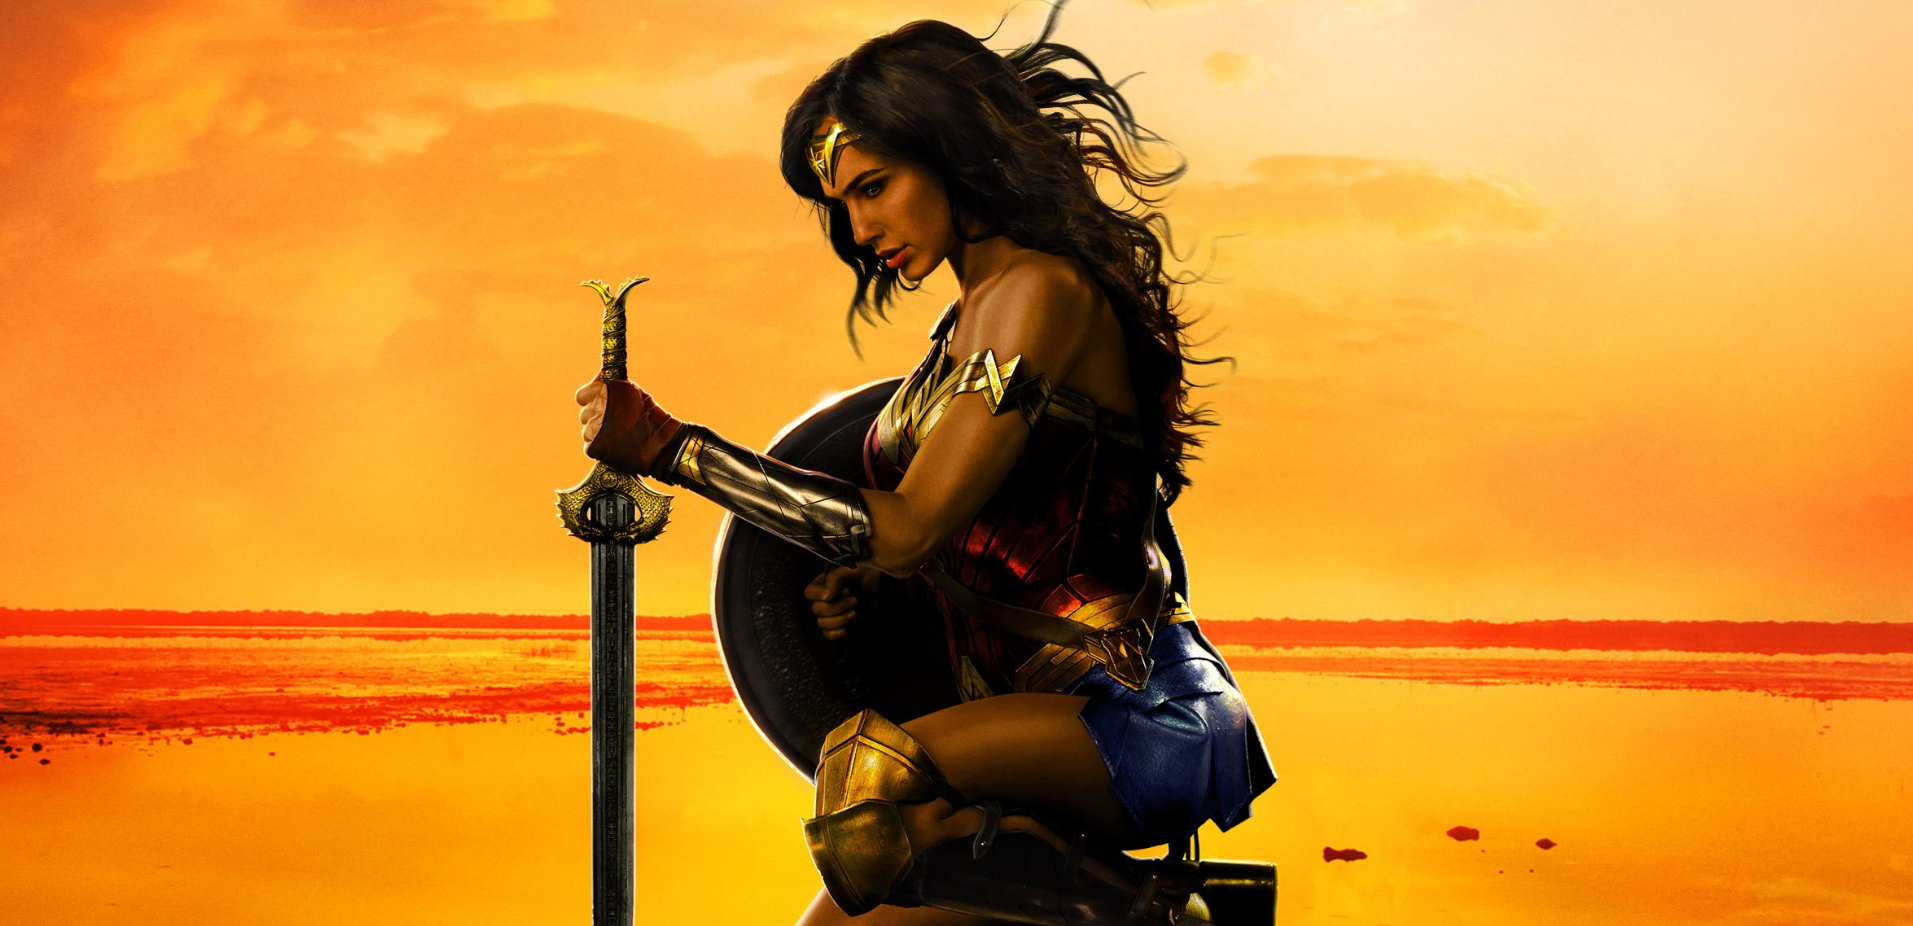 Wonder Woman La mujer maravilla Full HD Dual Latino Ingles Subtitulado